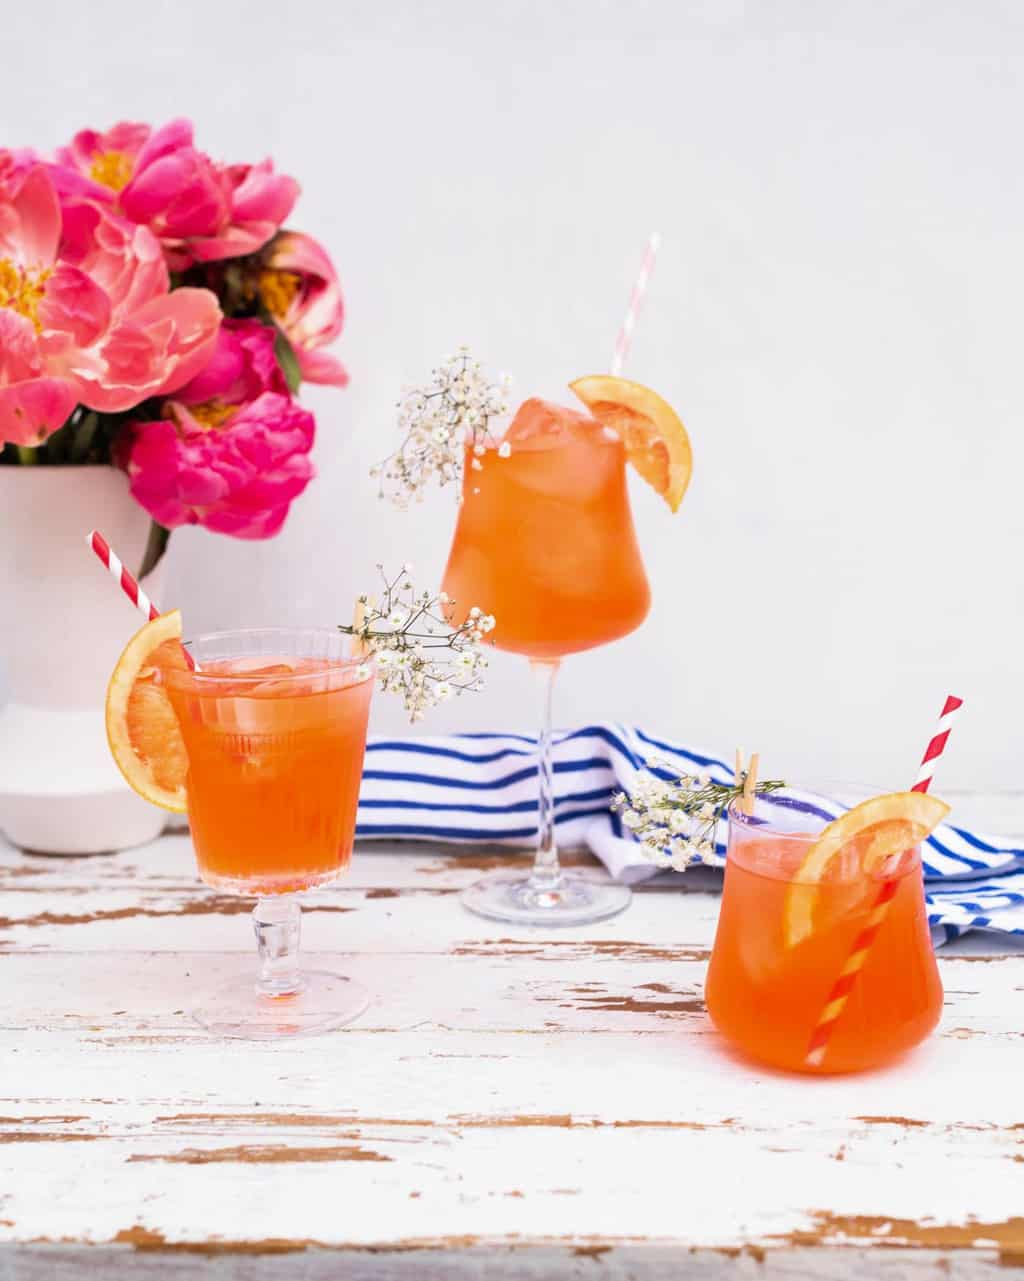 photo of three Elderflower Aperol Spritz cocktails by top Houston lifestyle blogger Ashley Rose of Sugar & Cloth